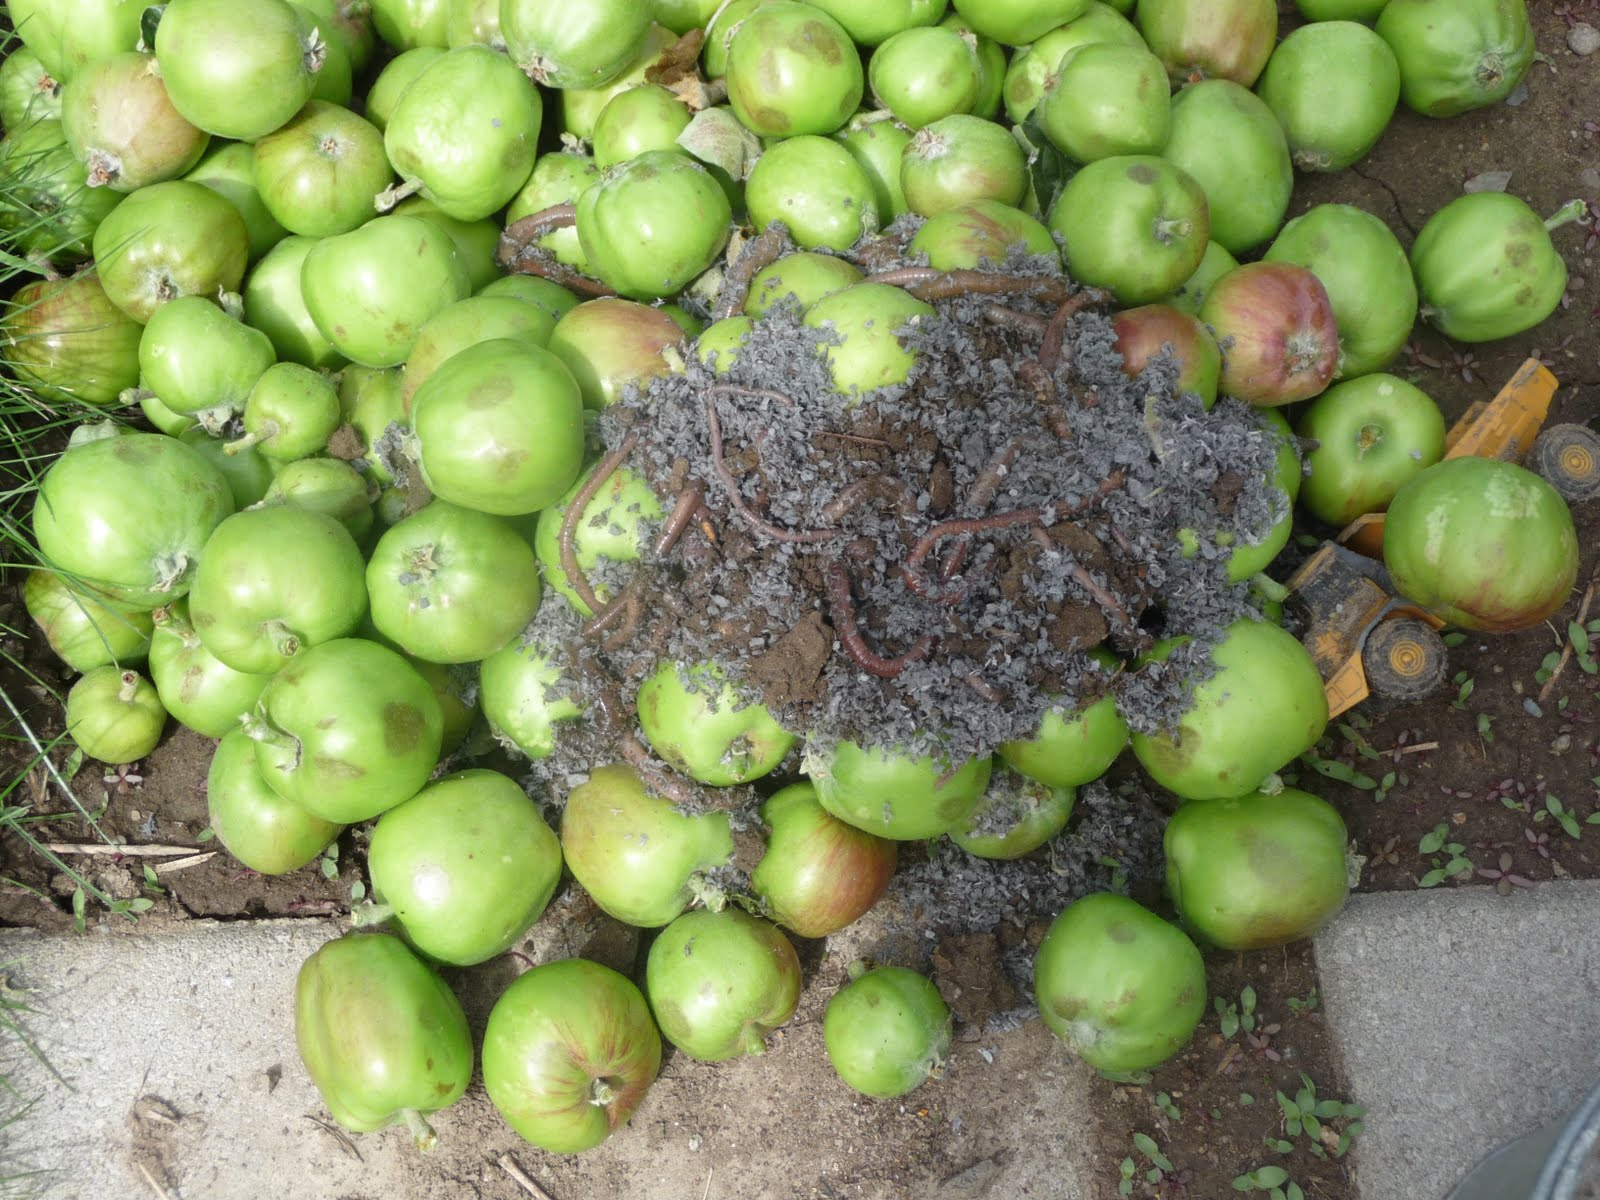 ATTIC CLUTTER: WORMS n APPLES